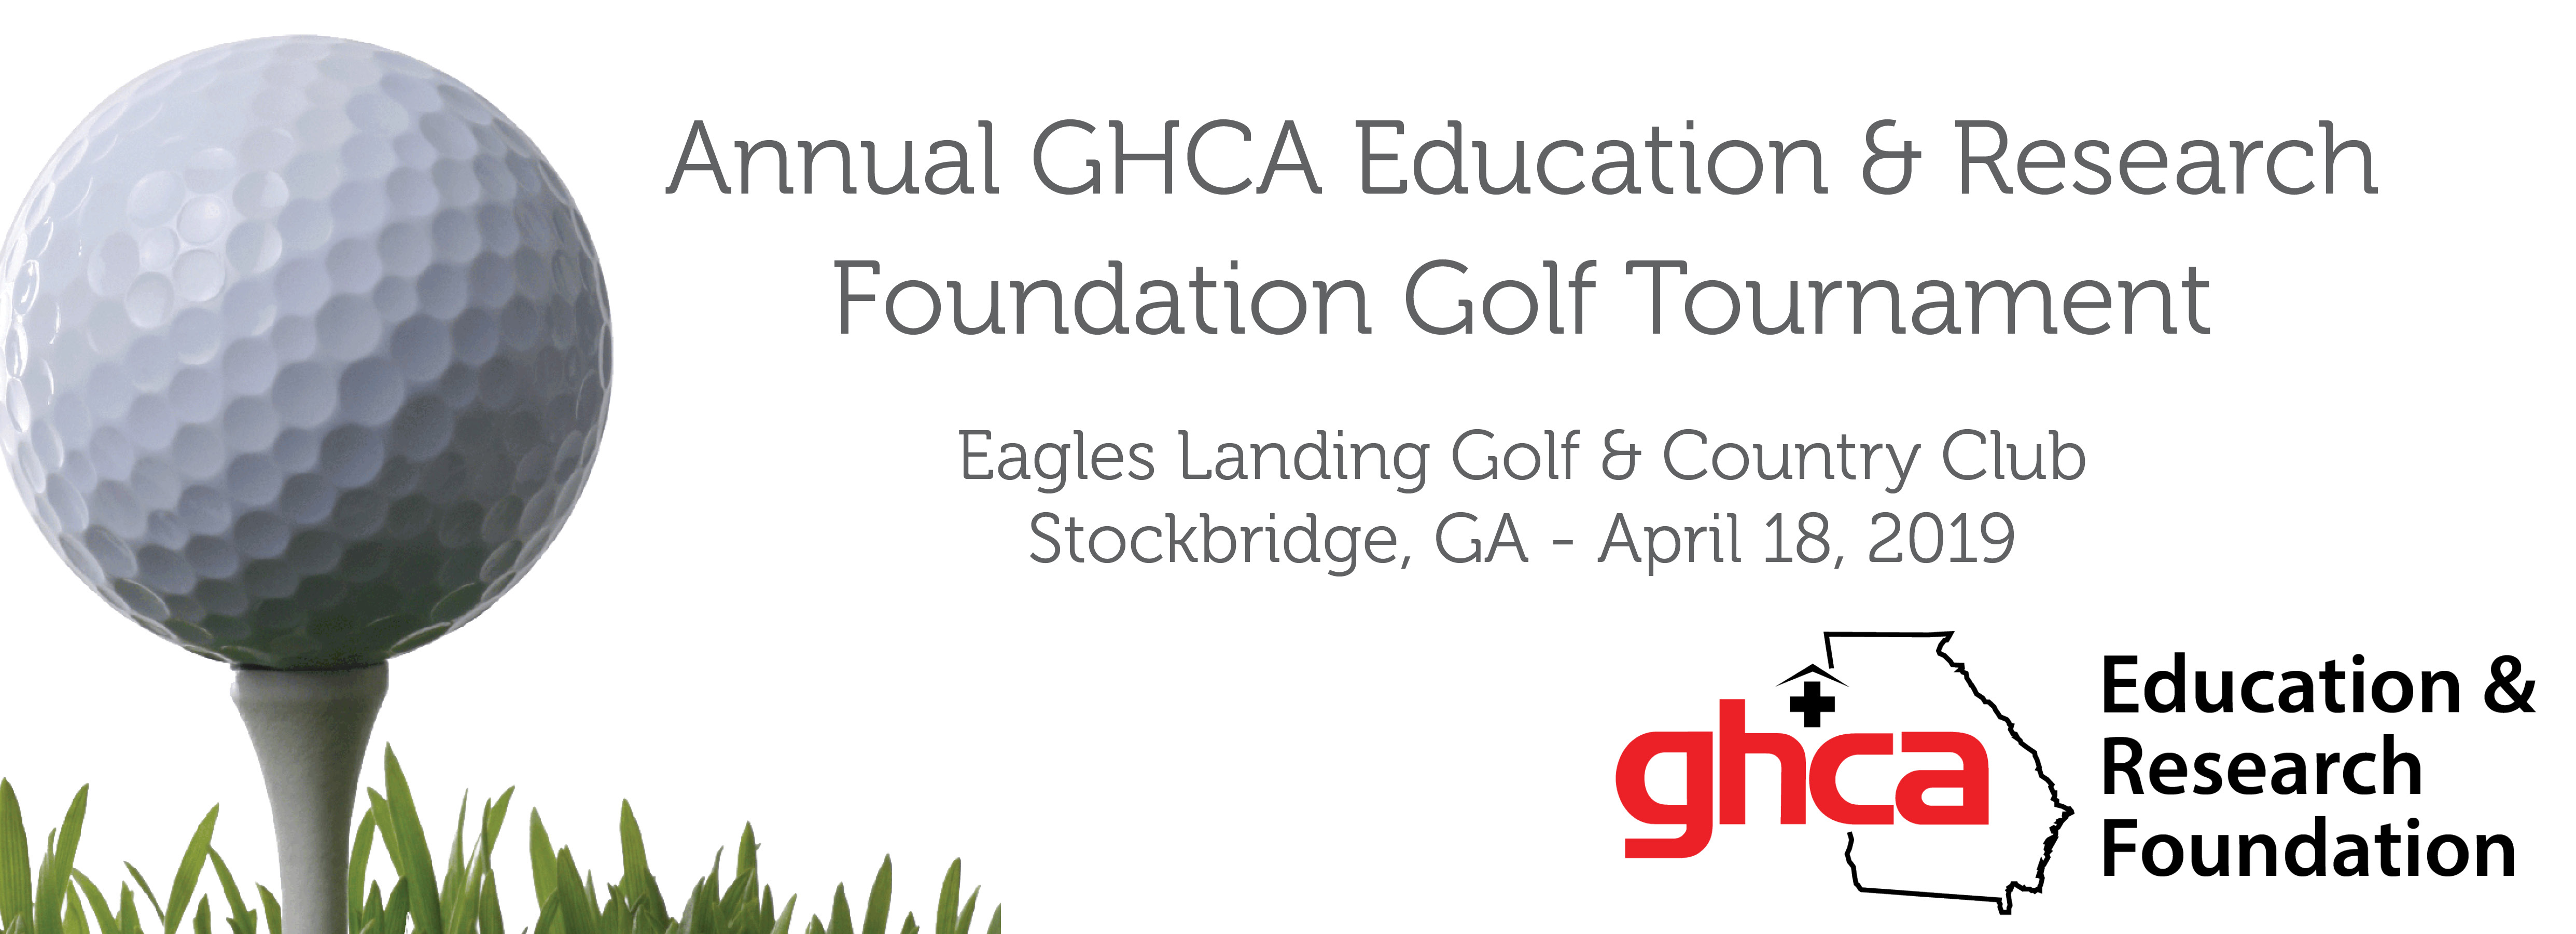 2019 GHCA Foundation Golf Tournament